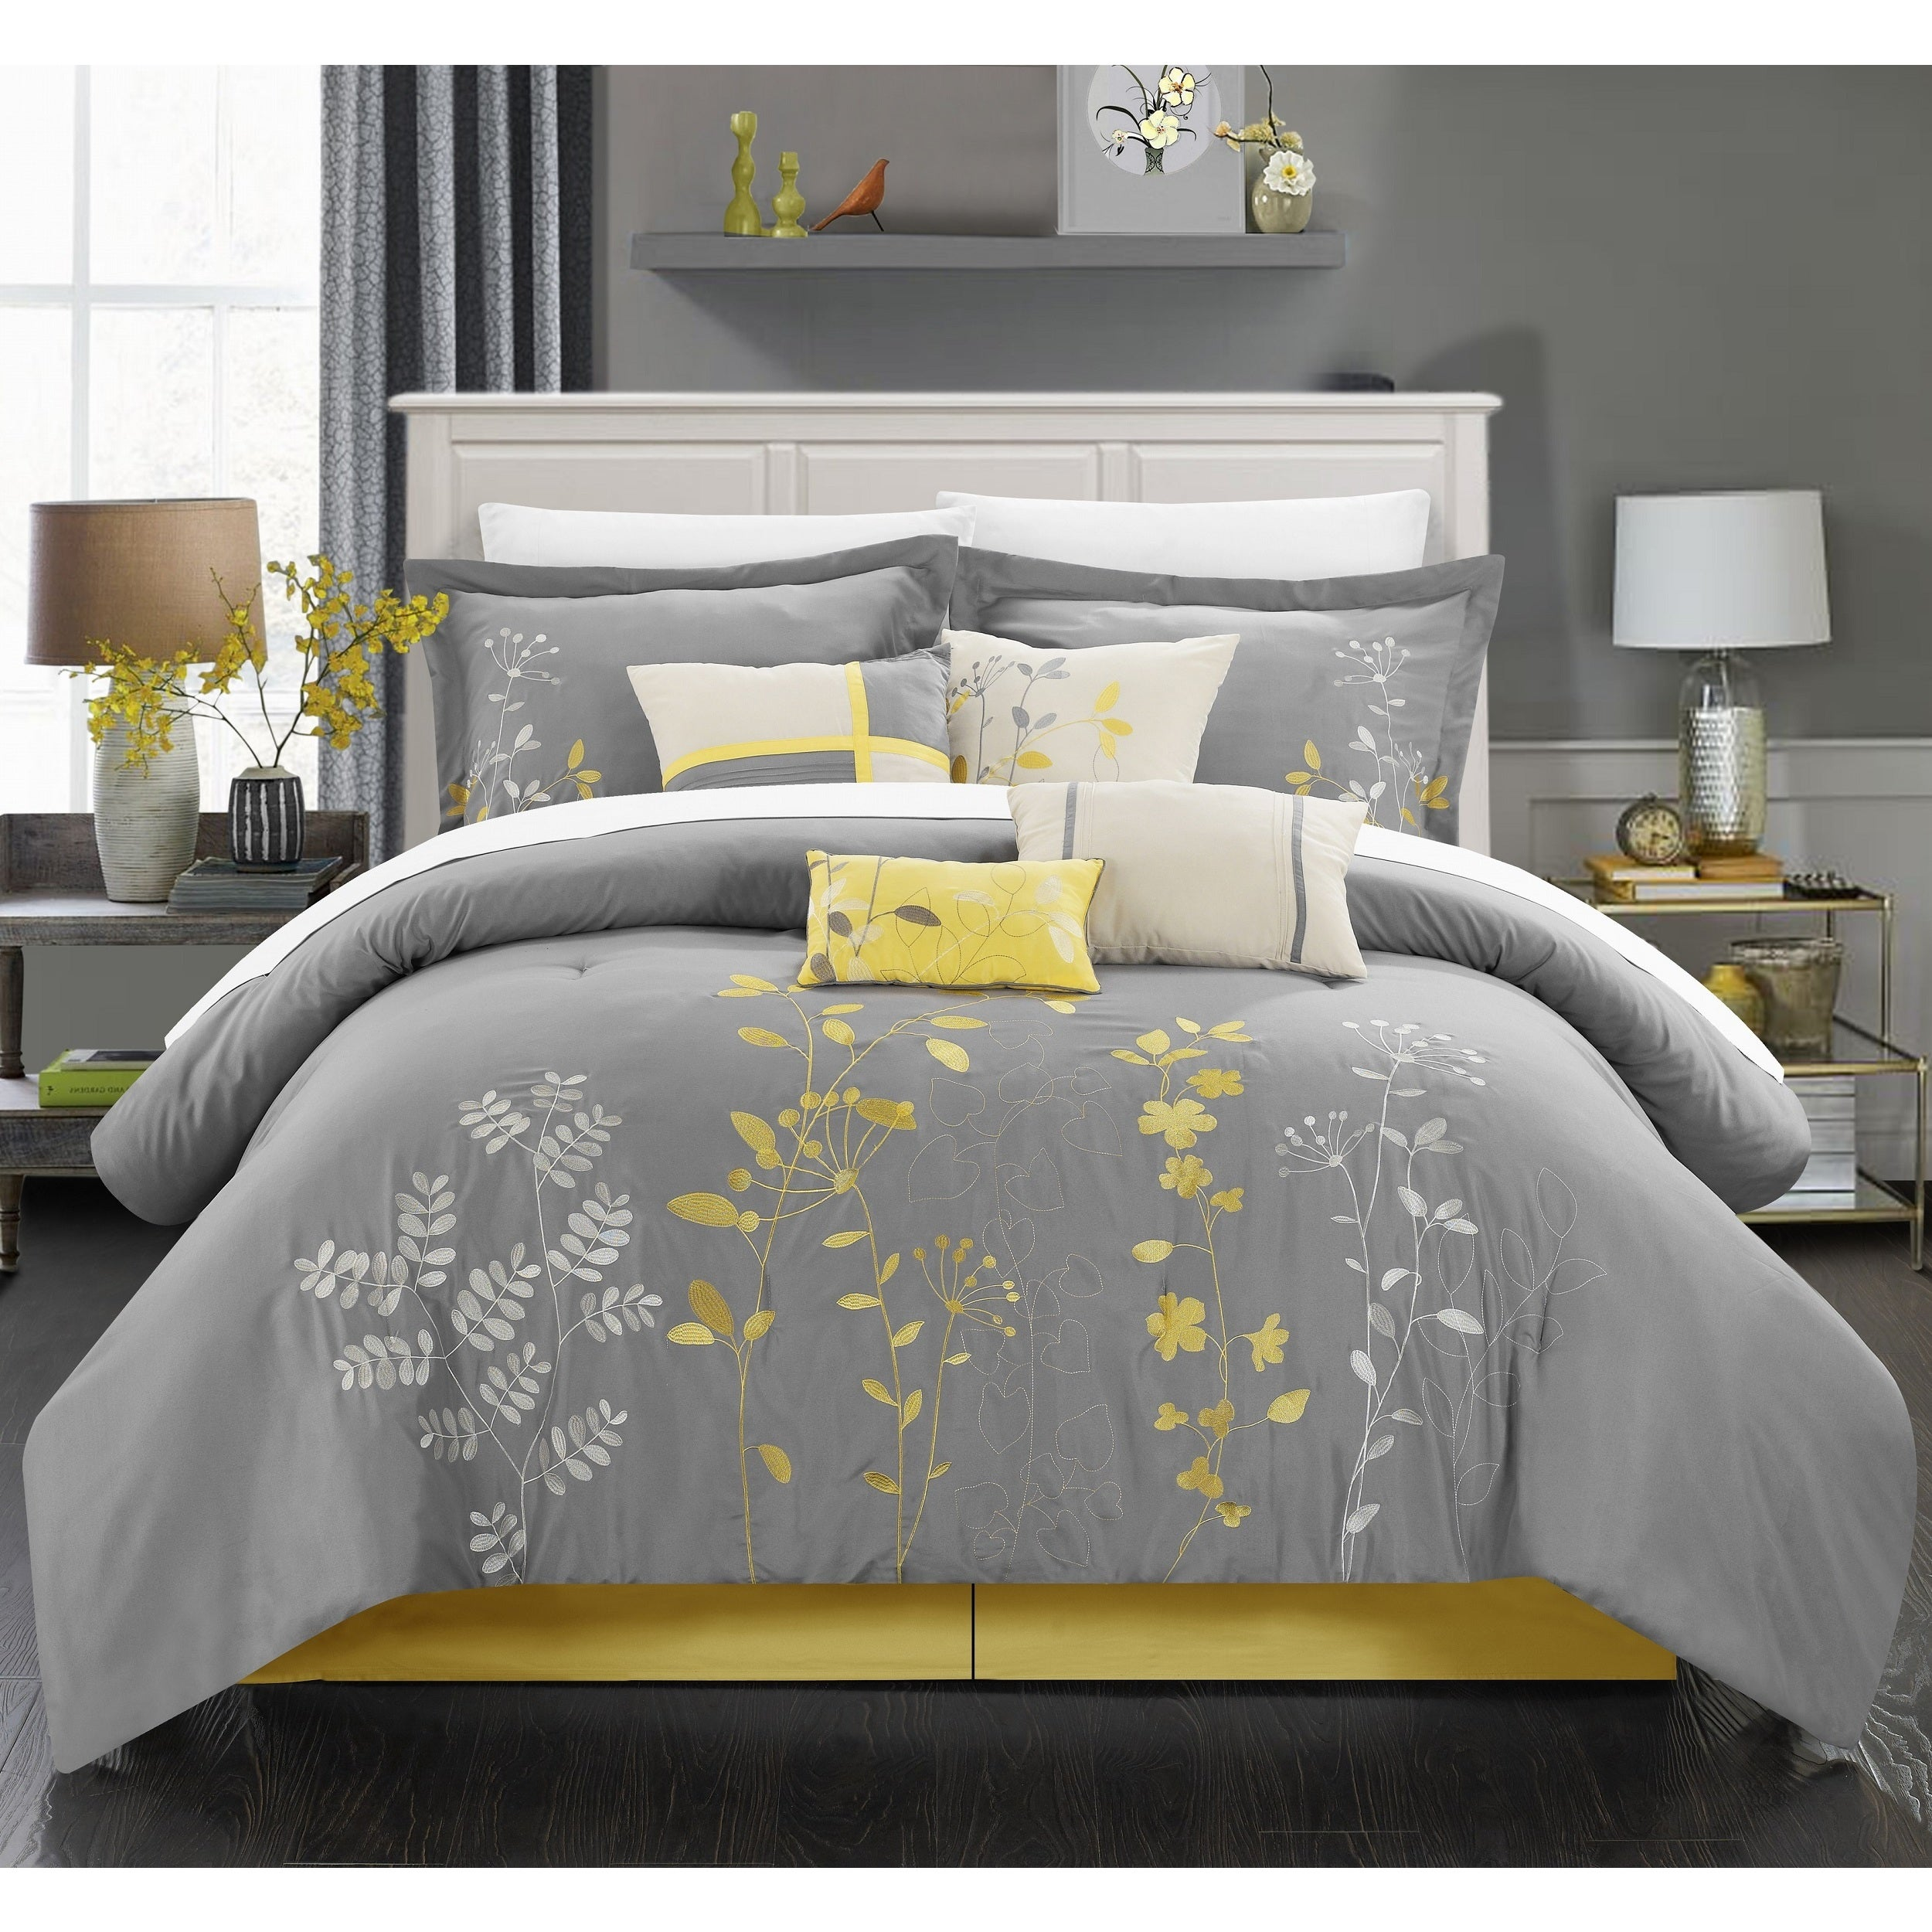 engaging and design decorating katalog frame black yellow images ideas walls decor accessories bedroom modern wallpaper sets grey comforter white bedding gray